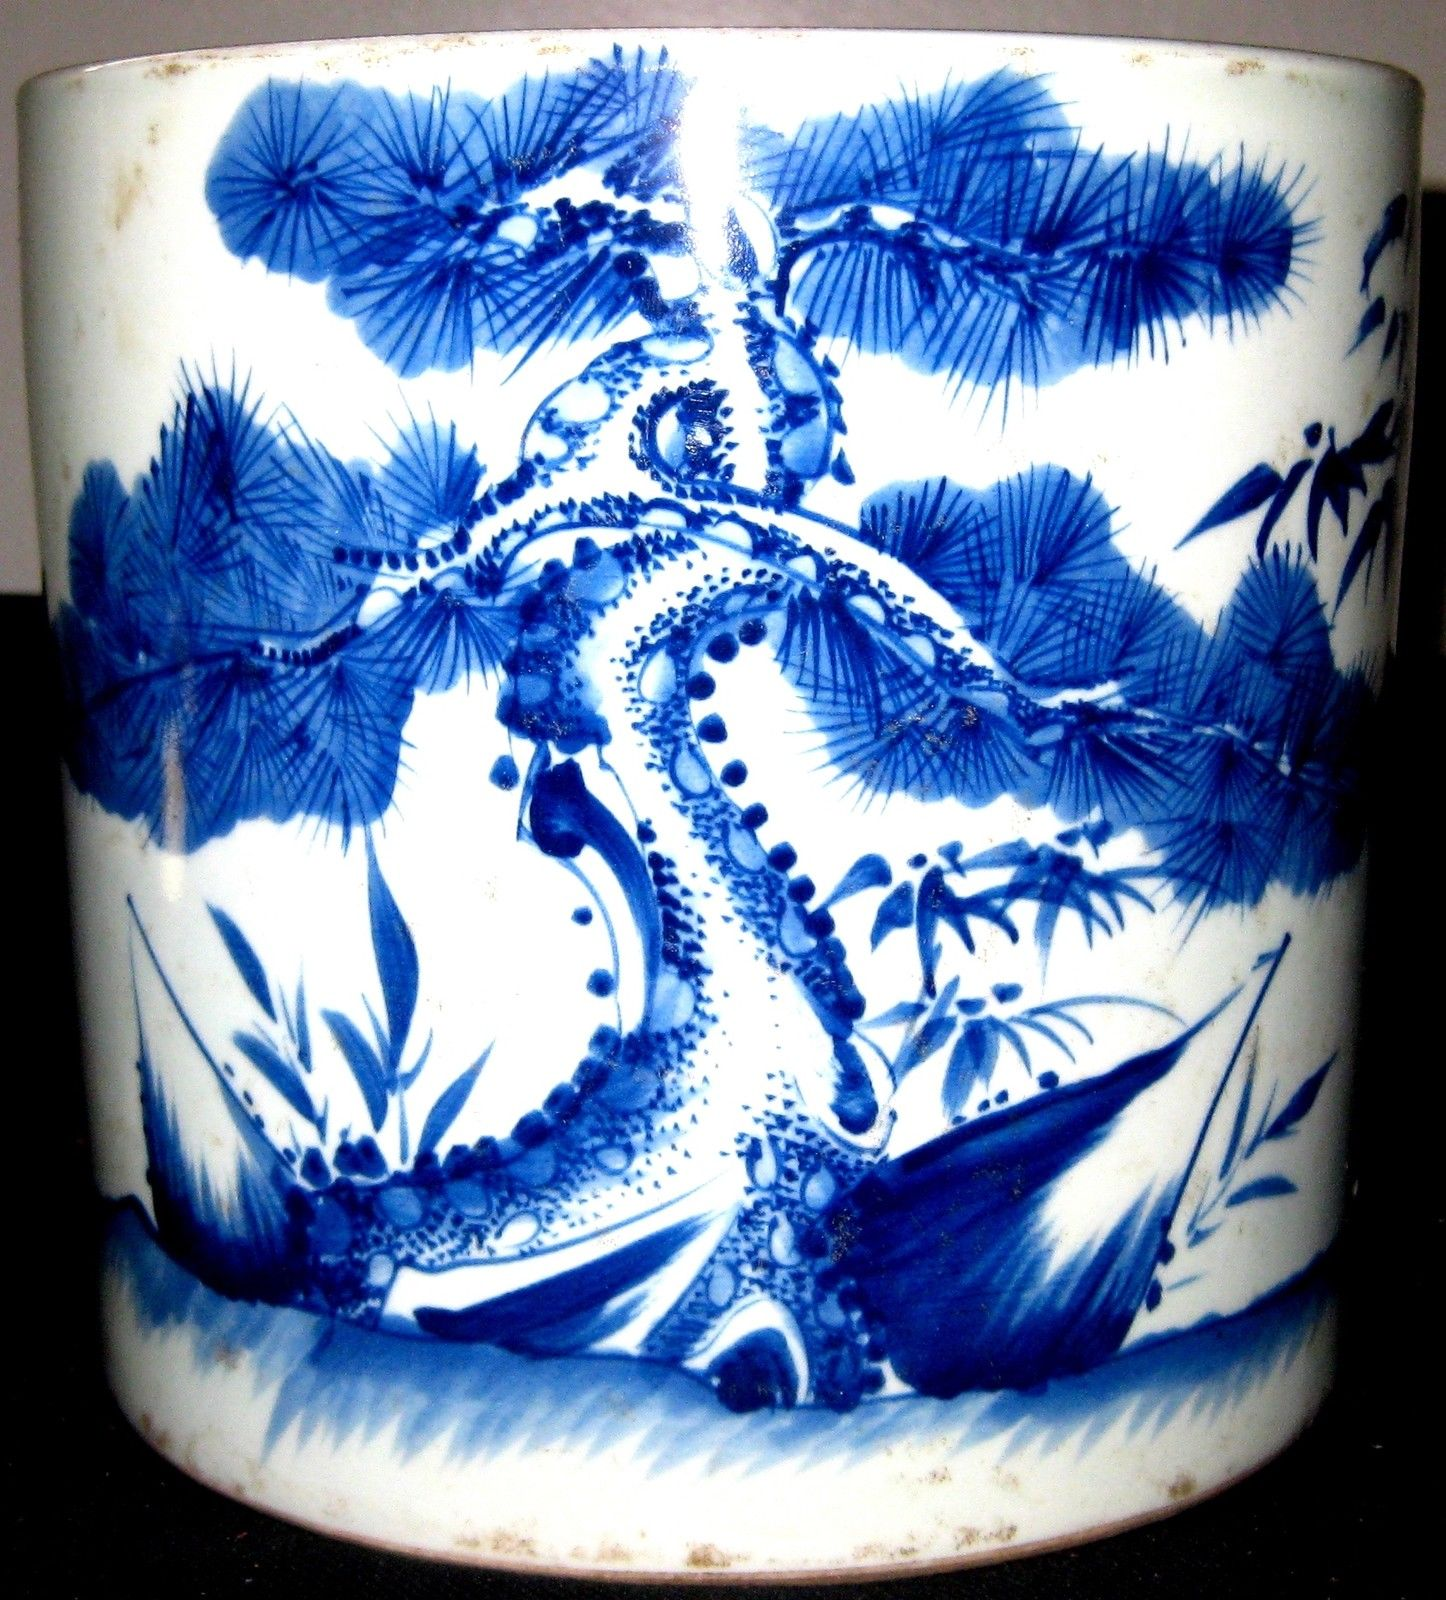 ANTIQUE RARE CHINESE BLUE & WHITE PORCELAIN BRUSH POT, KANGXI MARK, 19TH C., NR.